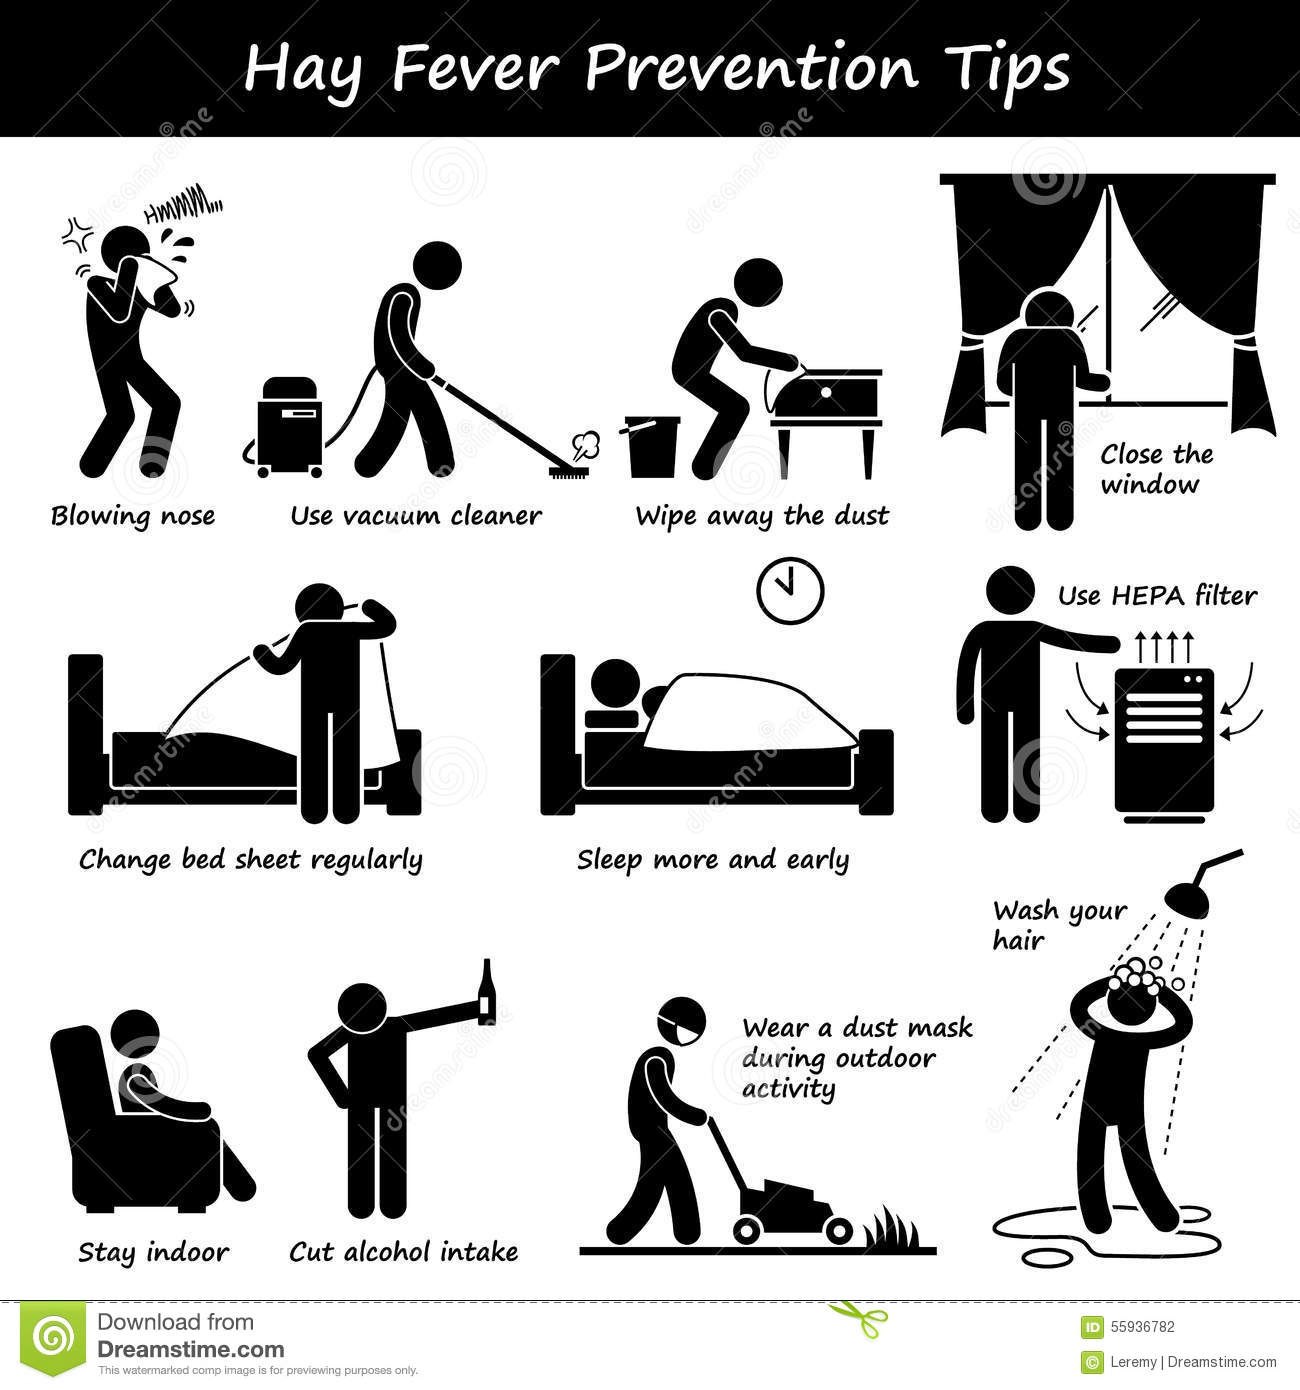 Hay Fever Prevention Allergy Tips Clipart Stock Vector.